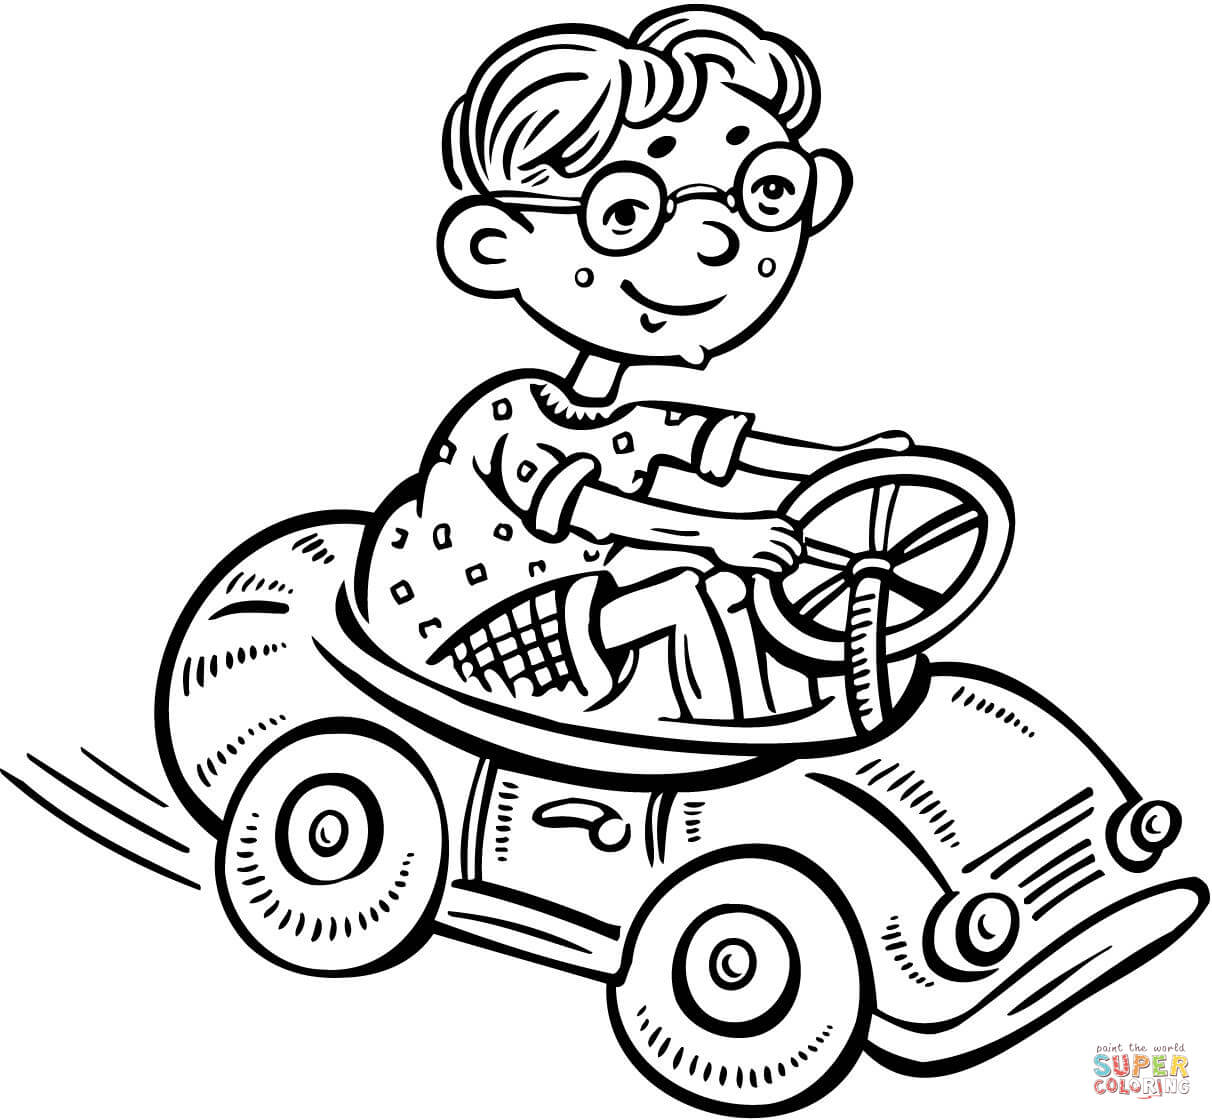 coloring toy car awesome basic taxi toy car coloring page cars coloring car toy coloring